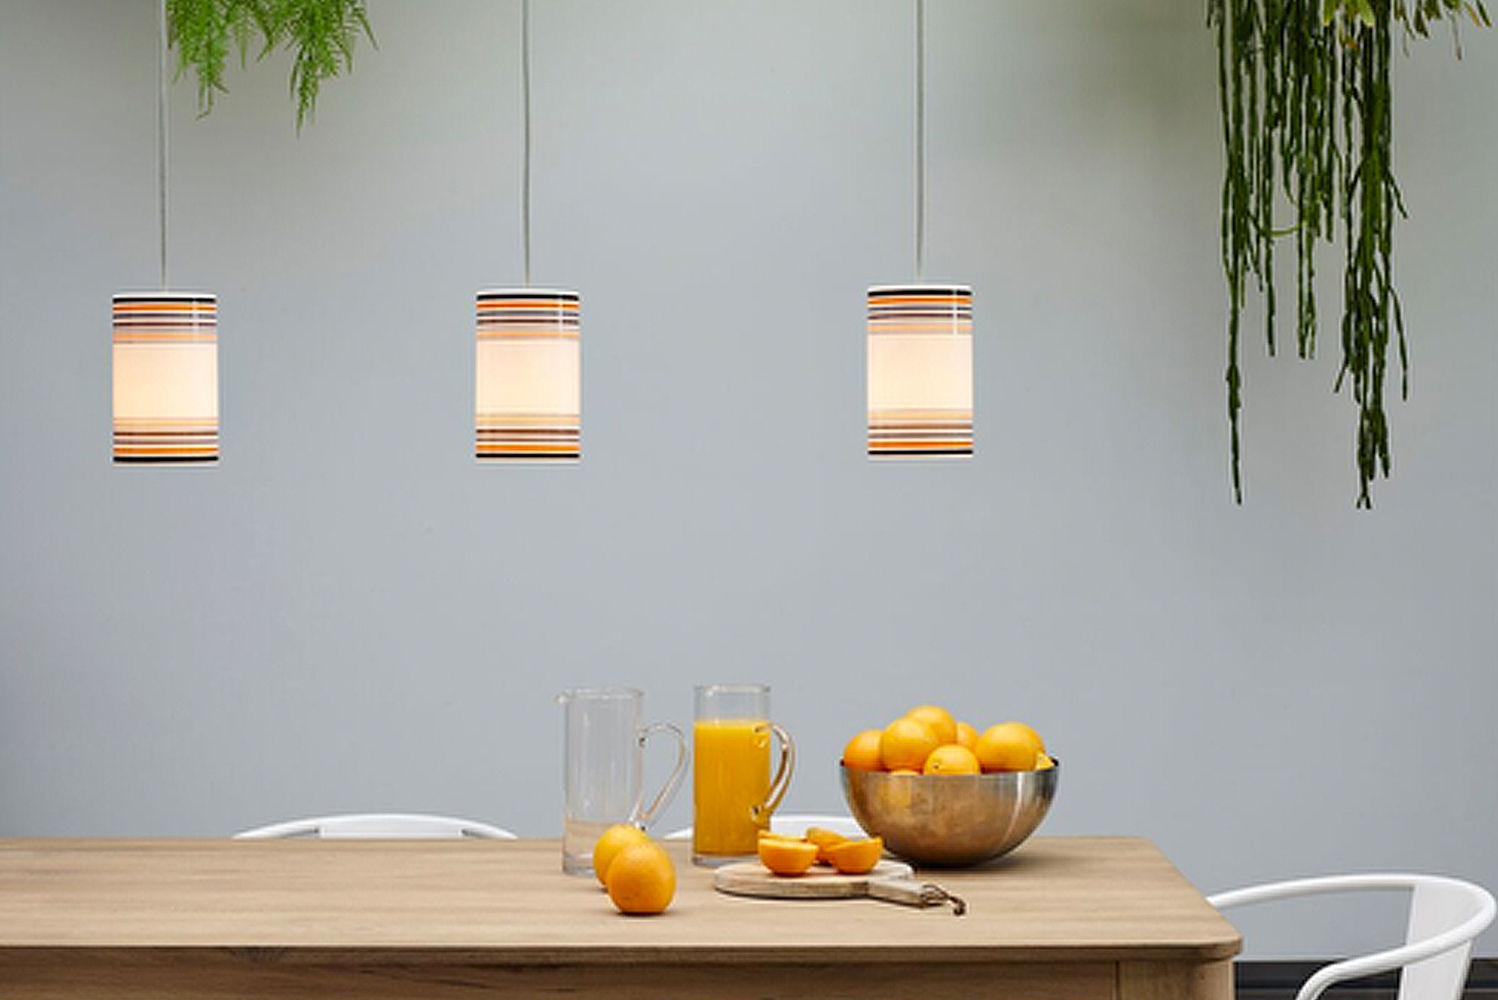 British lighting manufacturer Original BTC launched the May pendant.